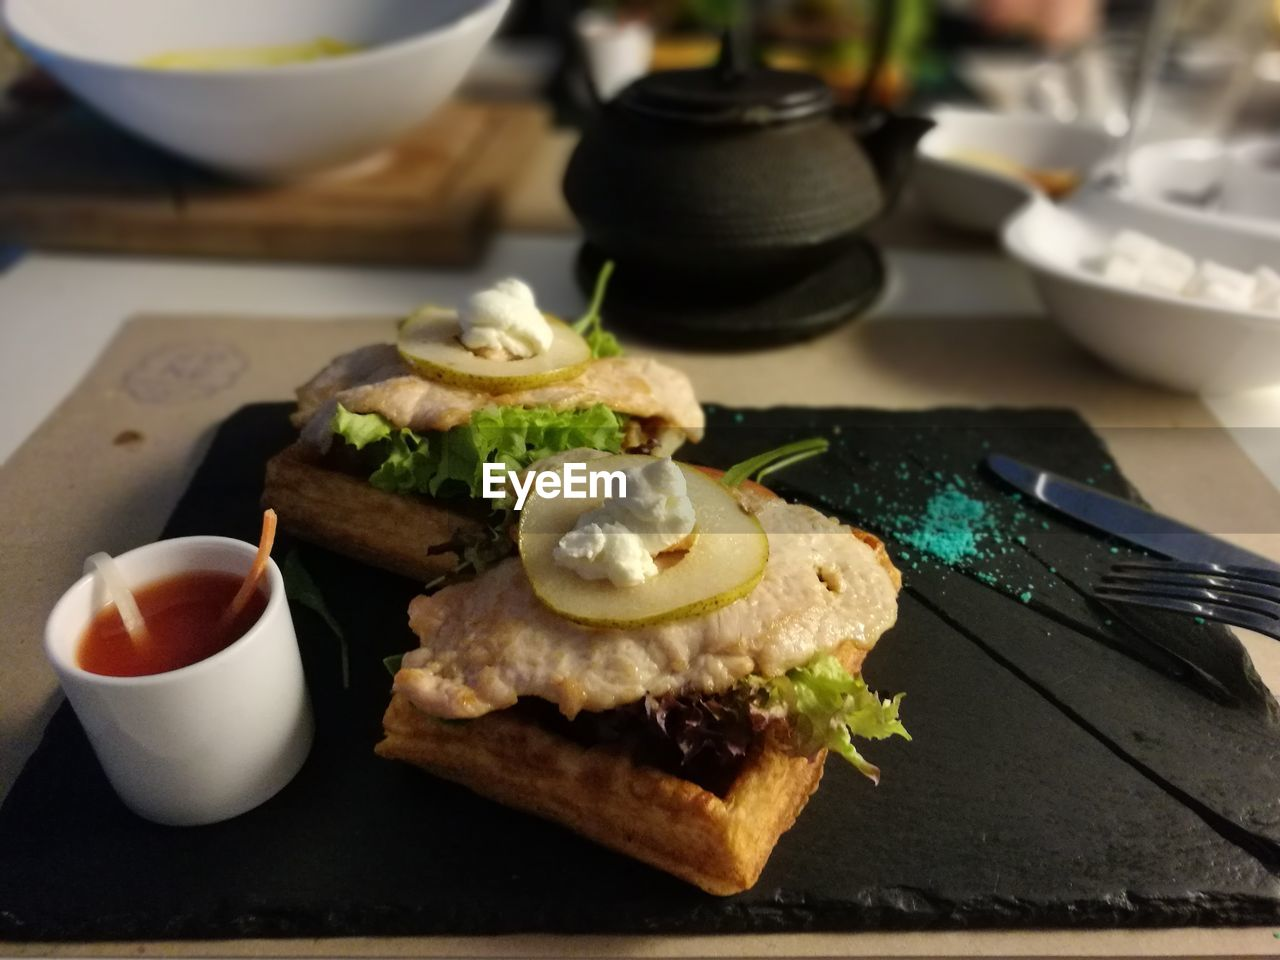 food and drink, food, freshness, table, plate, indoors, focus on foreground, no people, breakfast, ready-to-eat, healthy eating, close-up, drink, sweet food, day